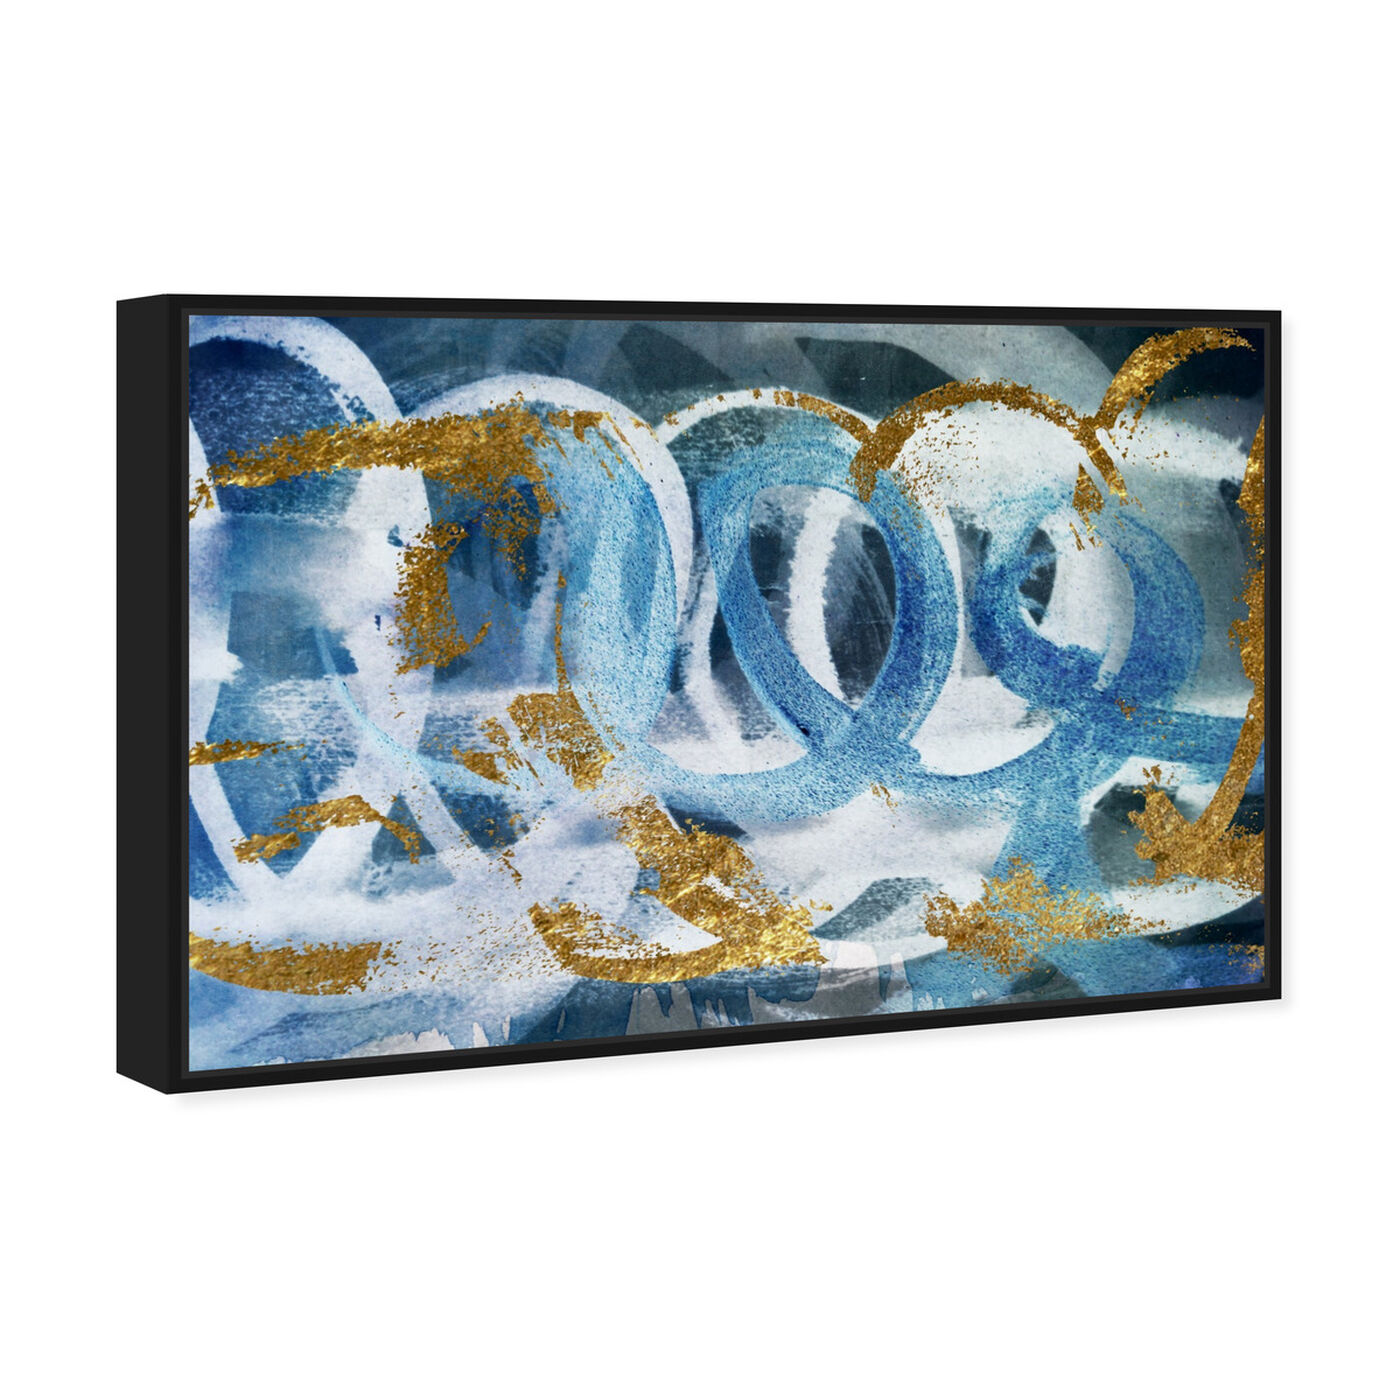 Angled view of Scriptica GOLD and BLUE featuring abstract and paint art.